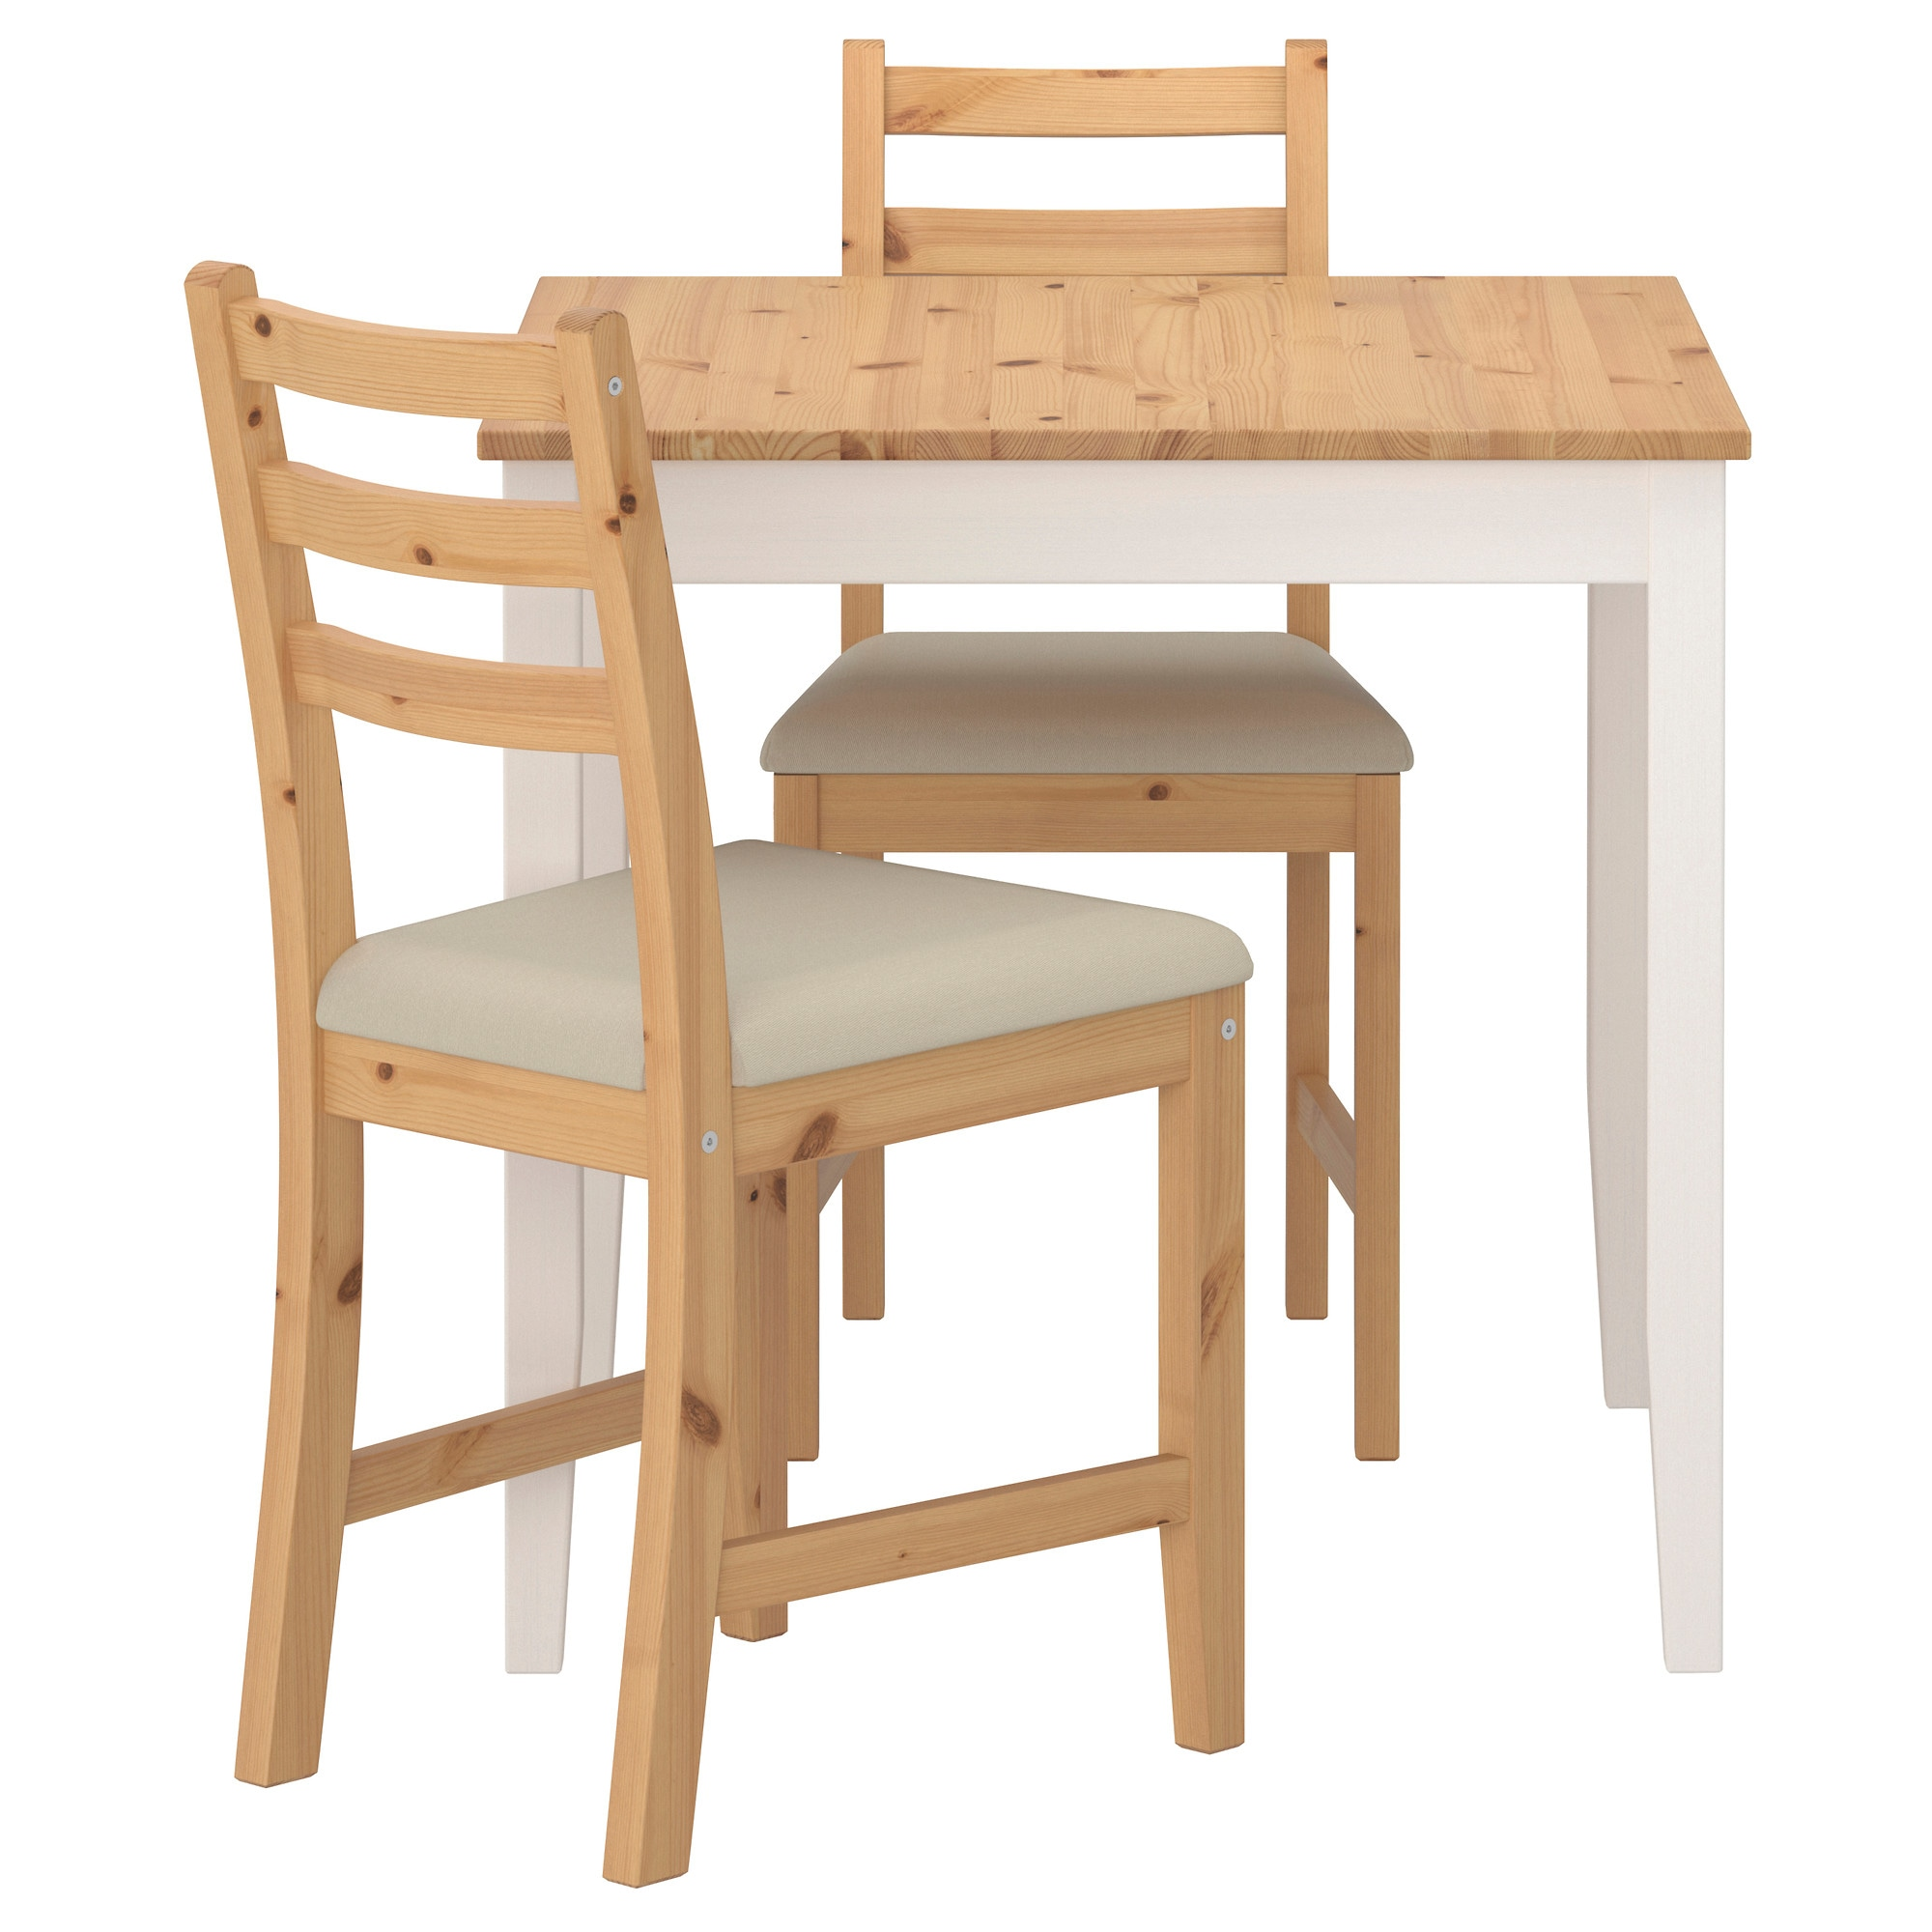 Exceptional Dining Table For Two Part - 1: LERHAMN Table And 2 Chairs - IKEA